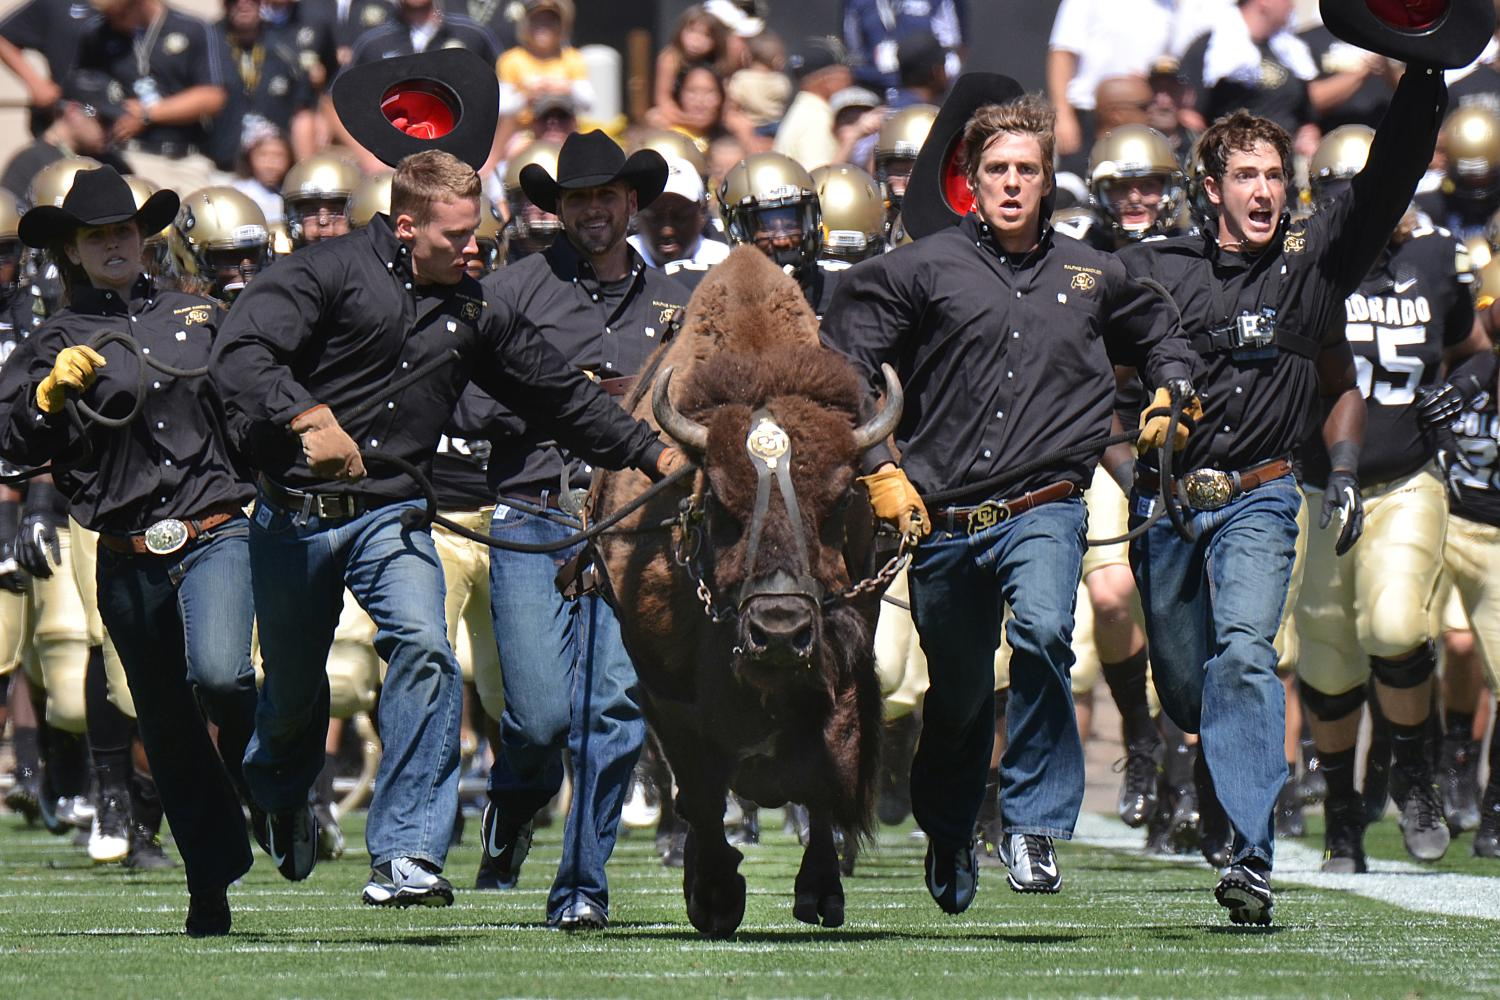 Ralphie leads the Buffs onto the field before a home game.